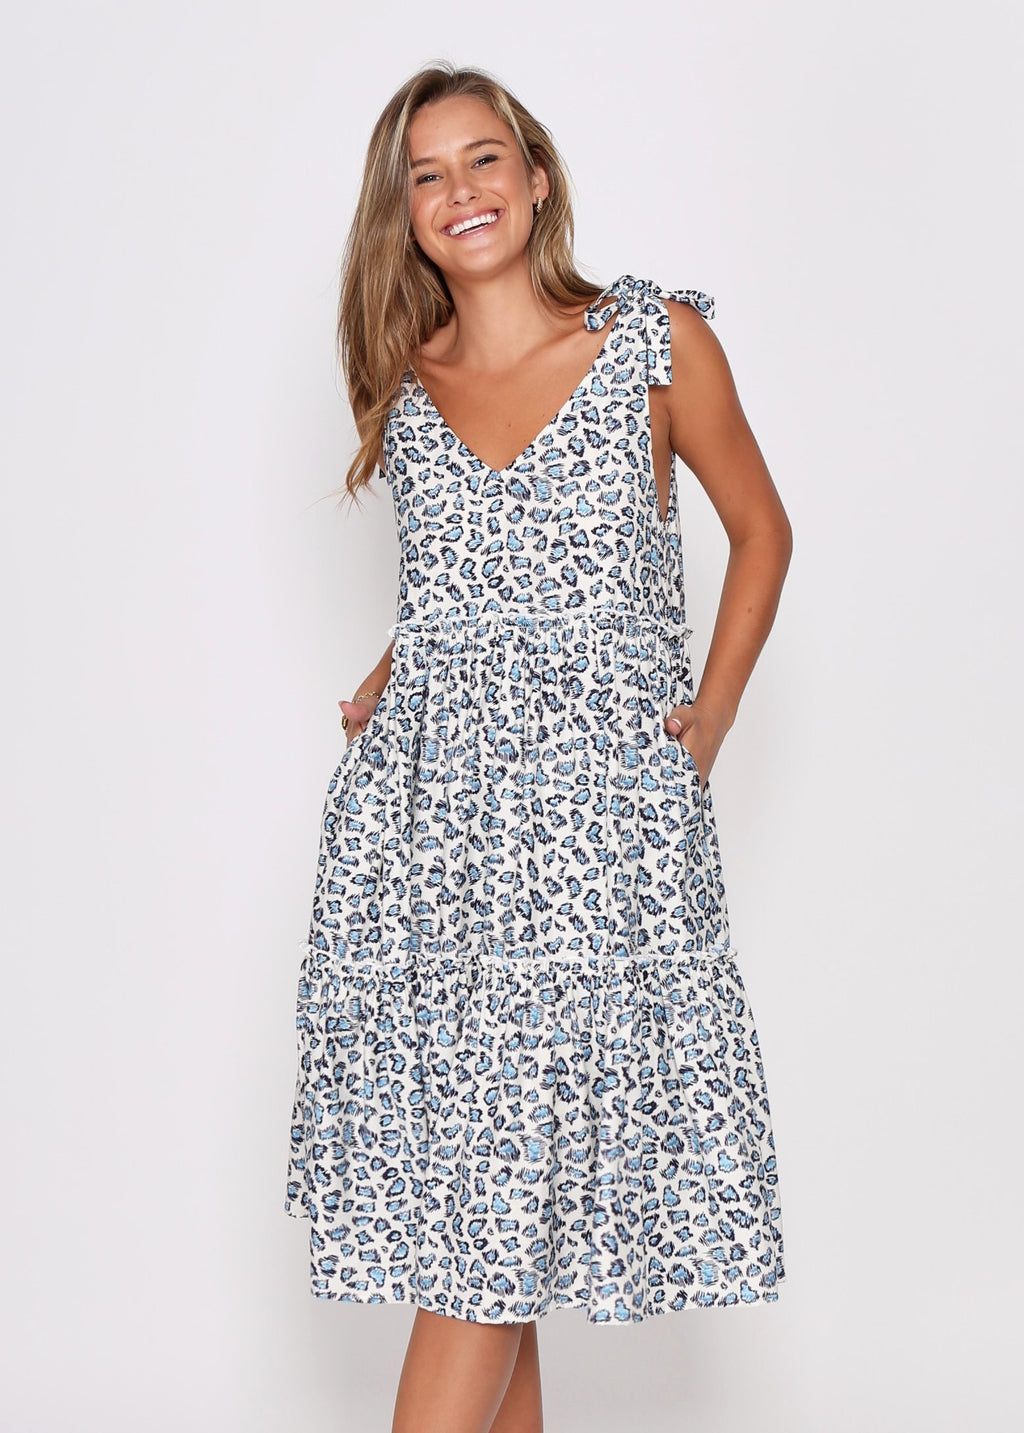 NEW - LYNX DRESS - BLUE LEOPARD